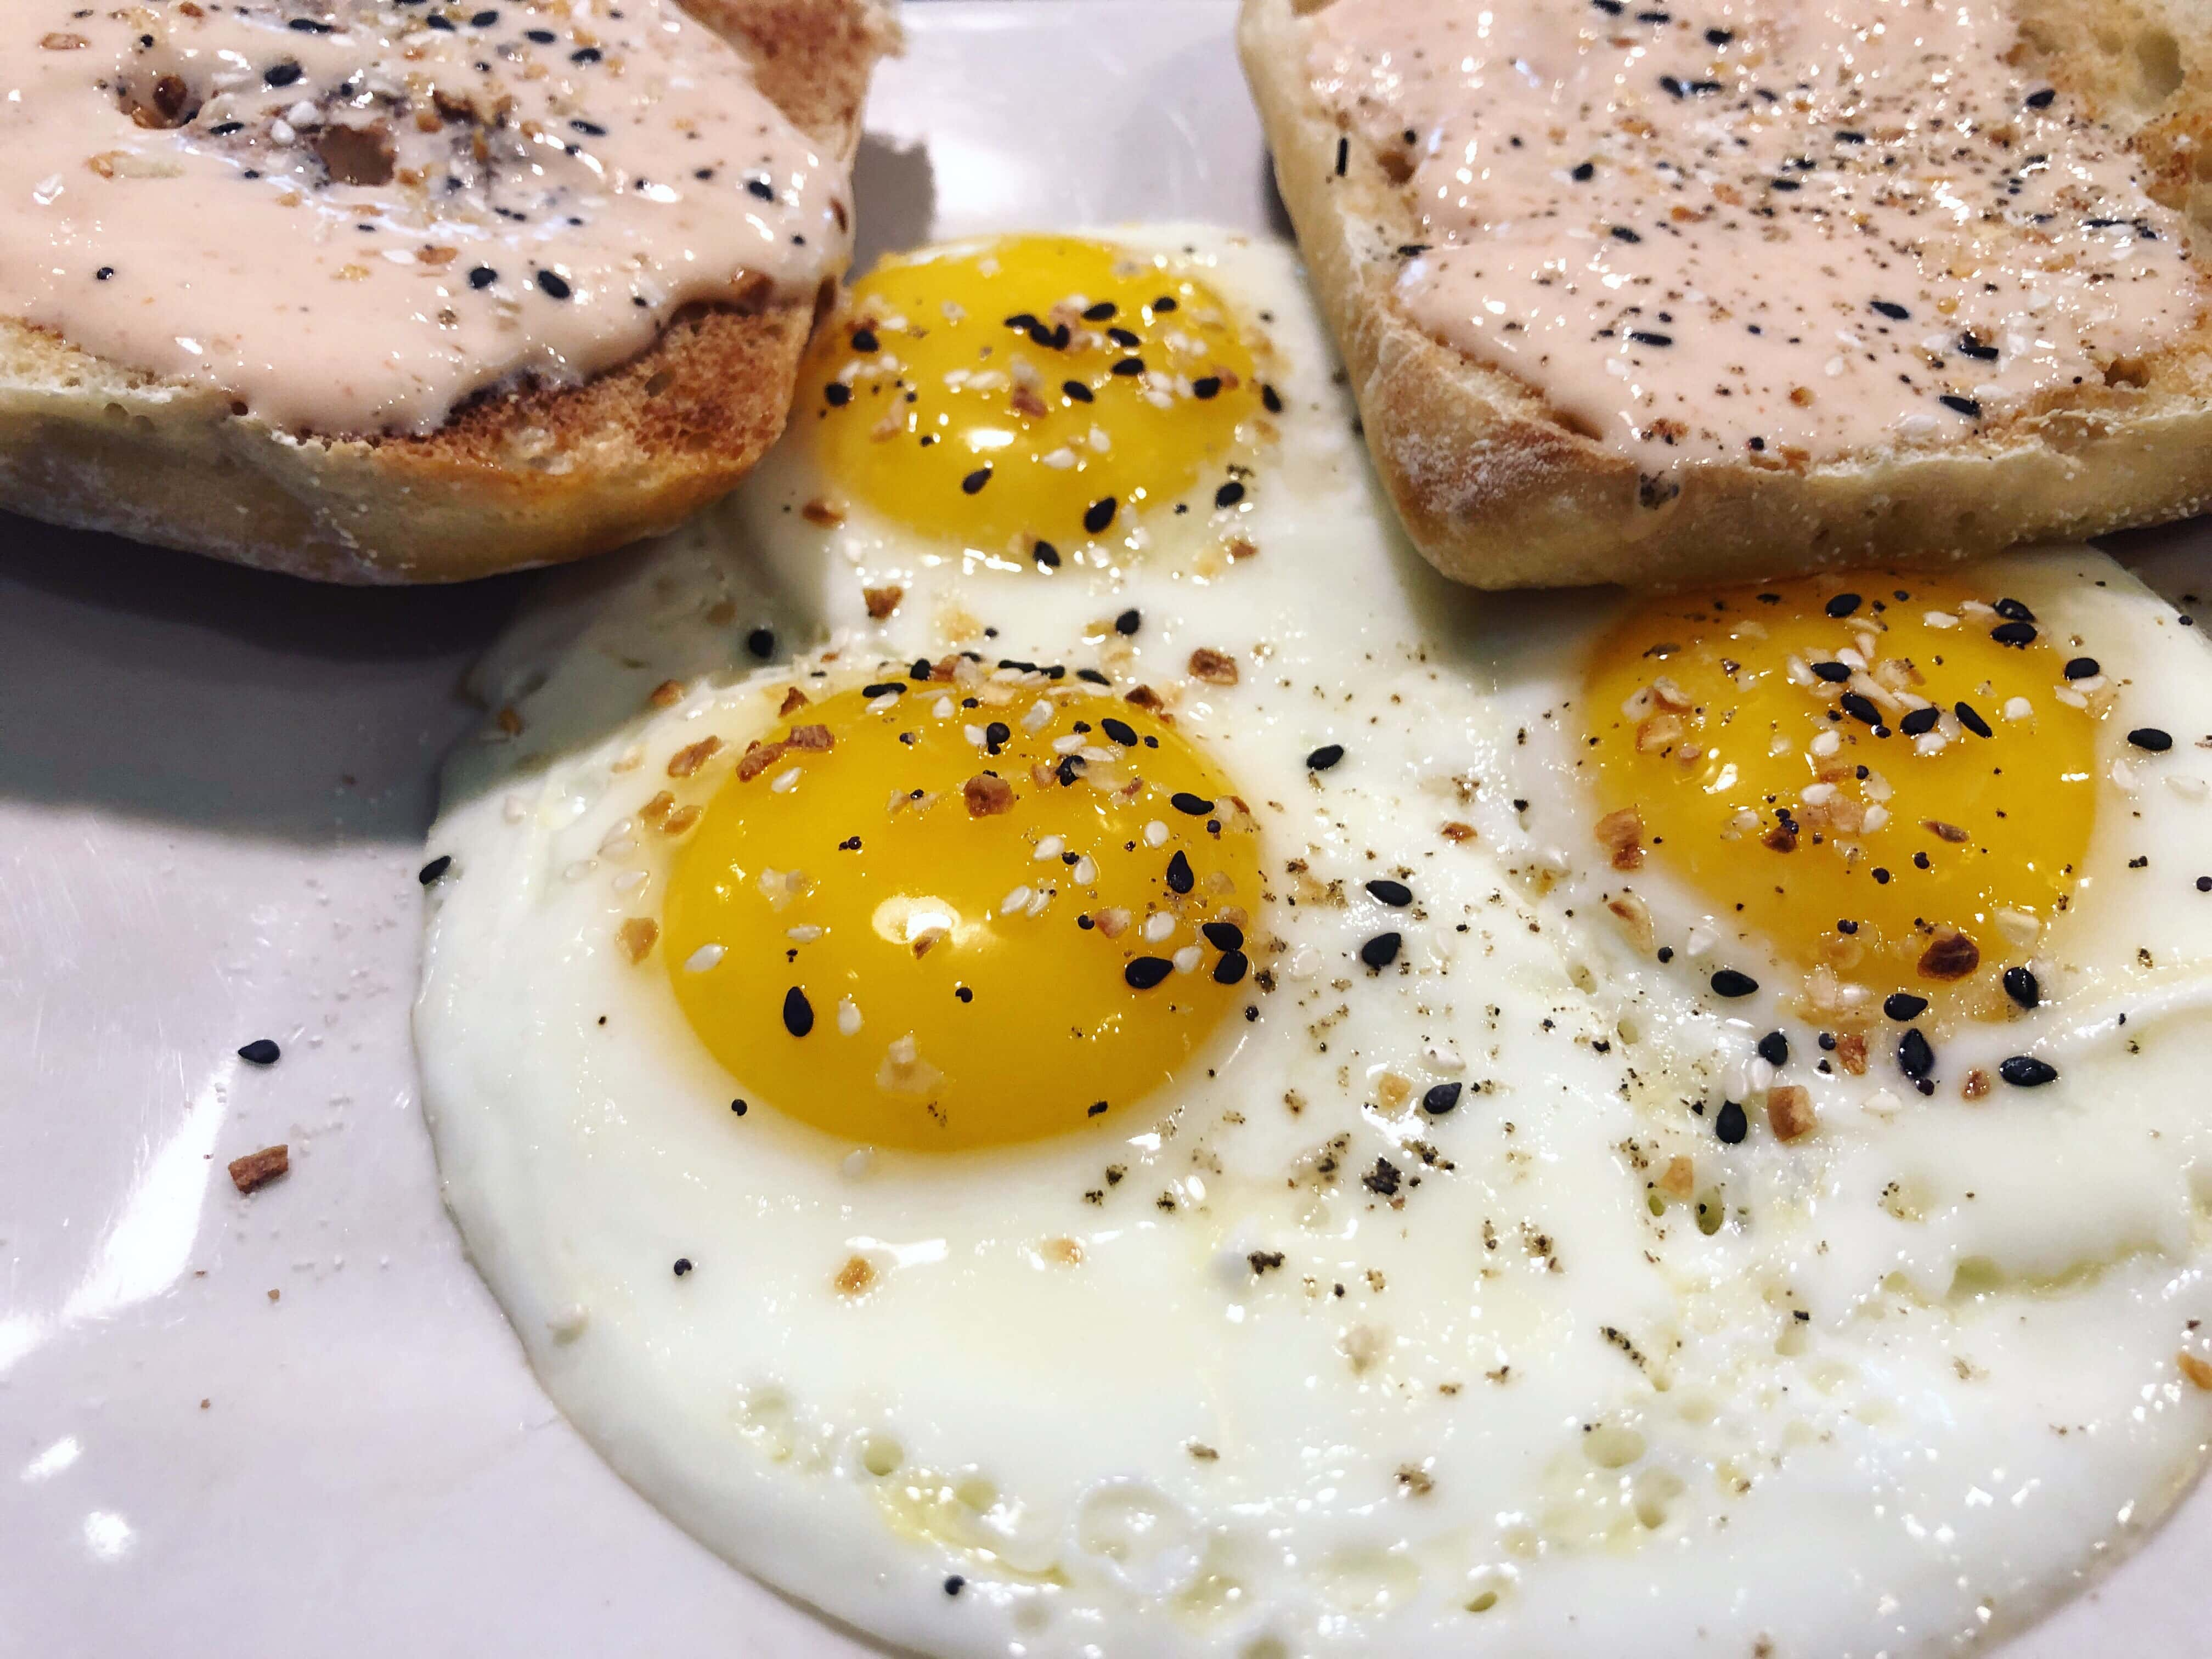 Three perfectly fried eggs